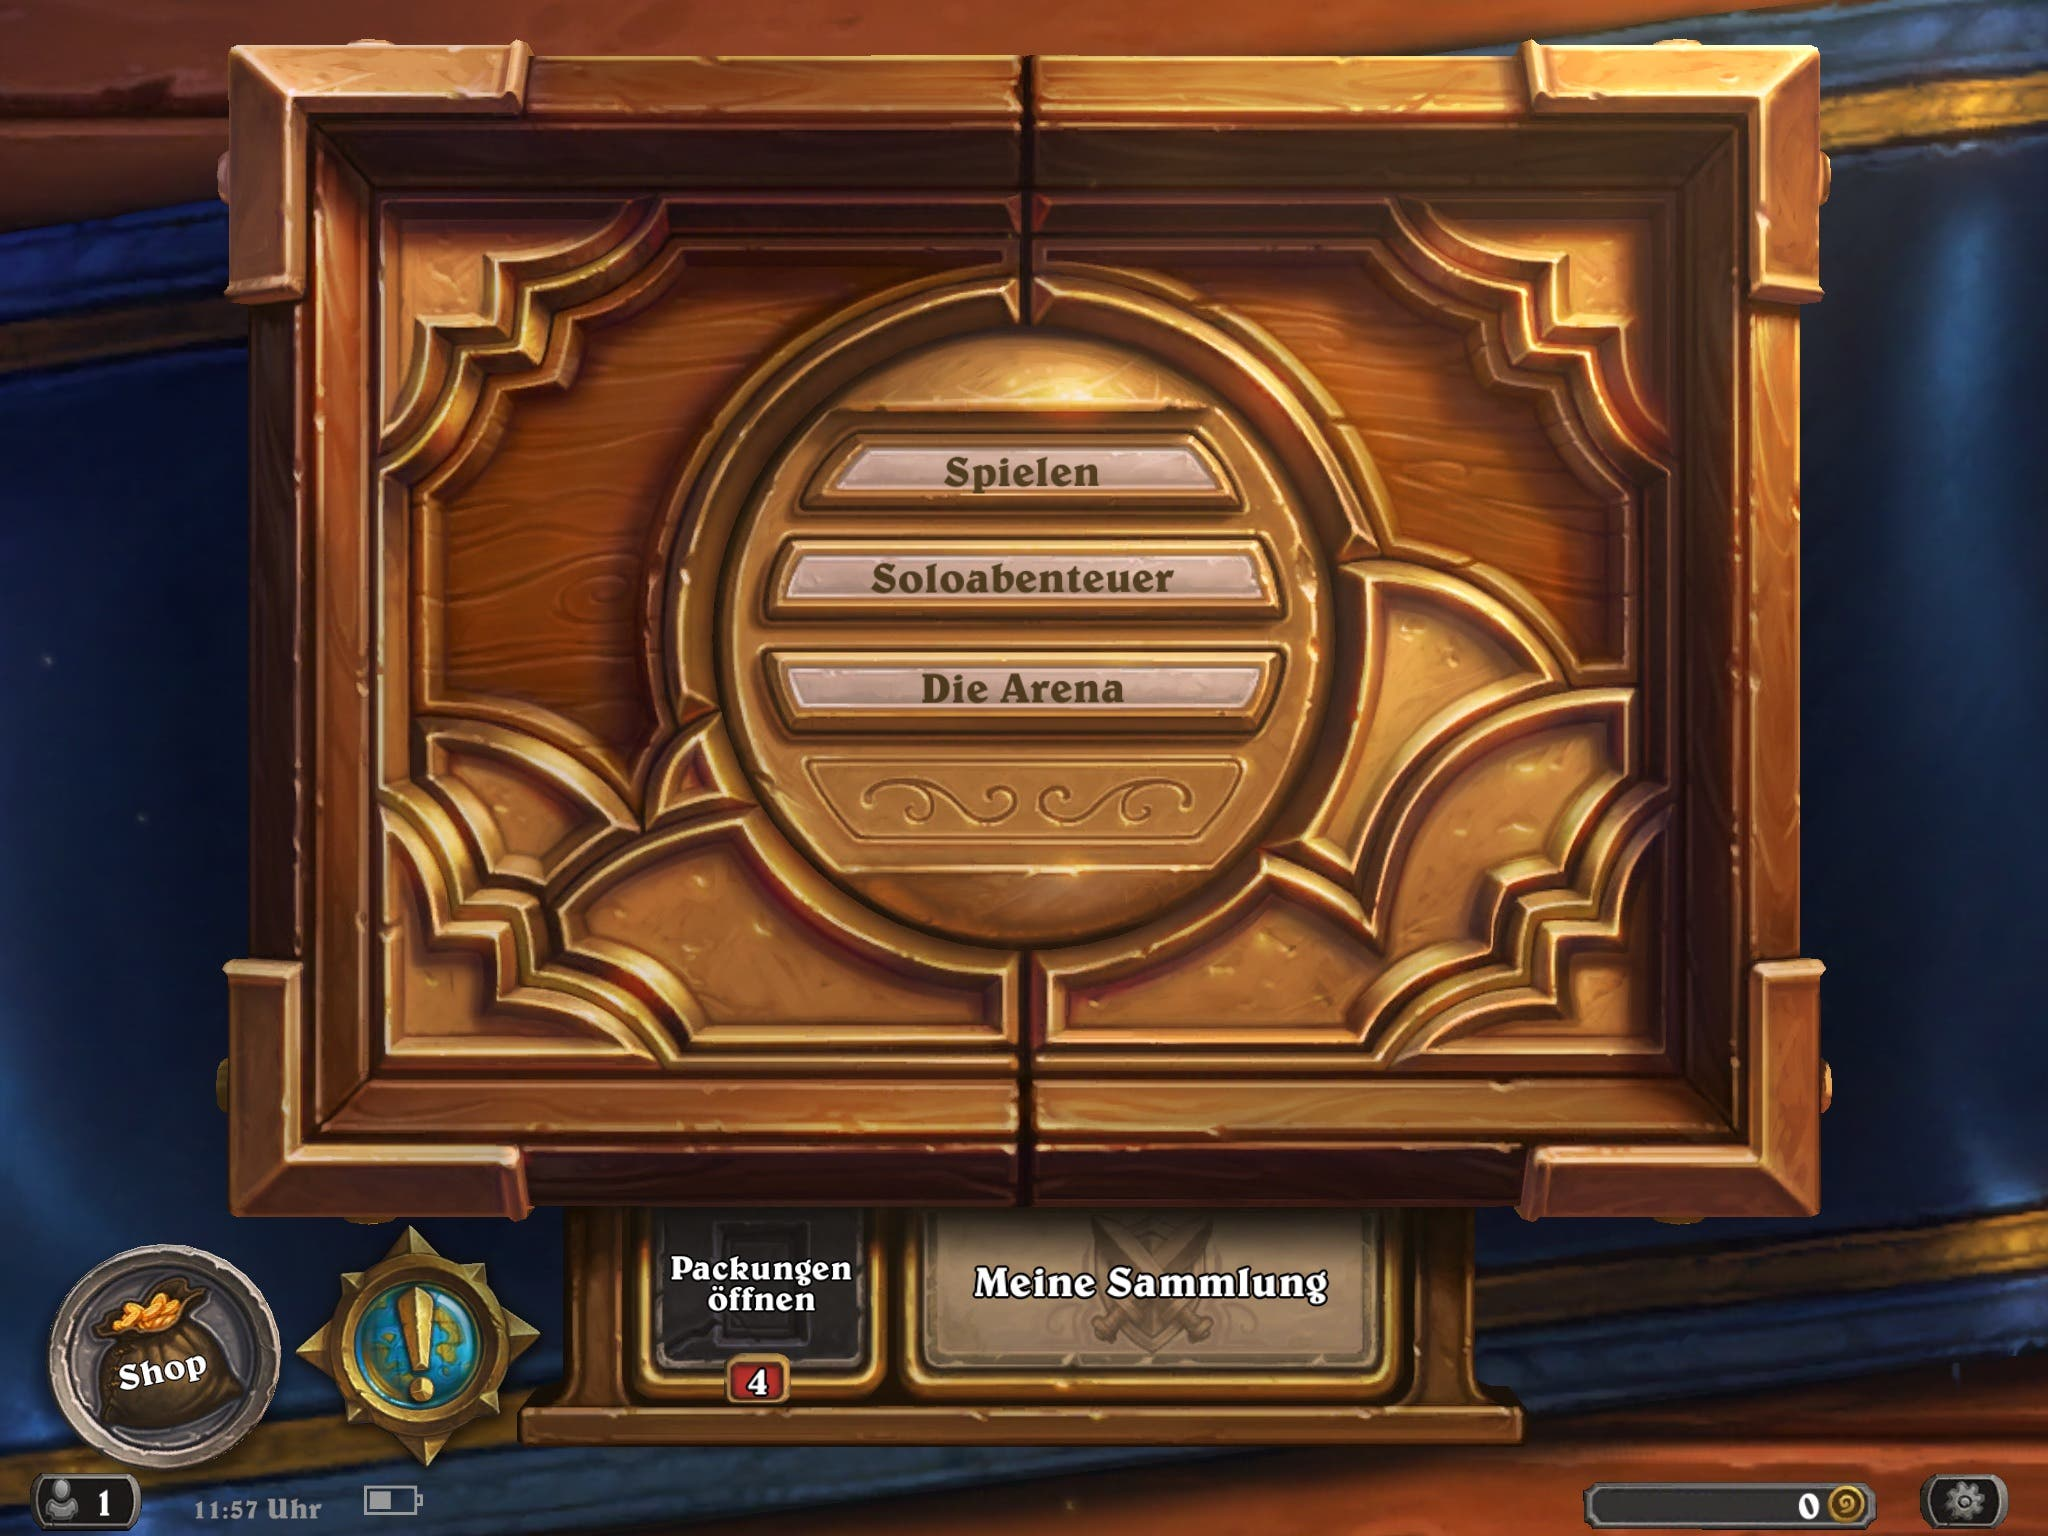 Blizzard Hearthstone iOS